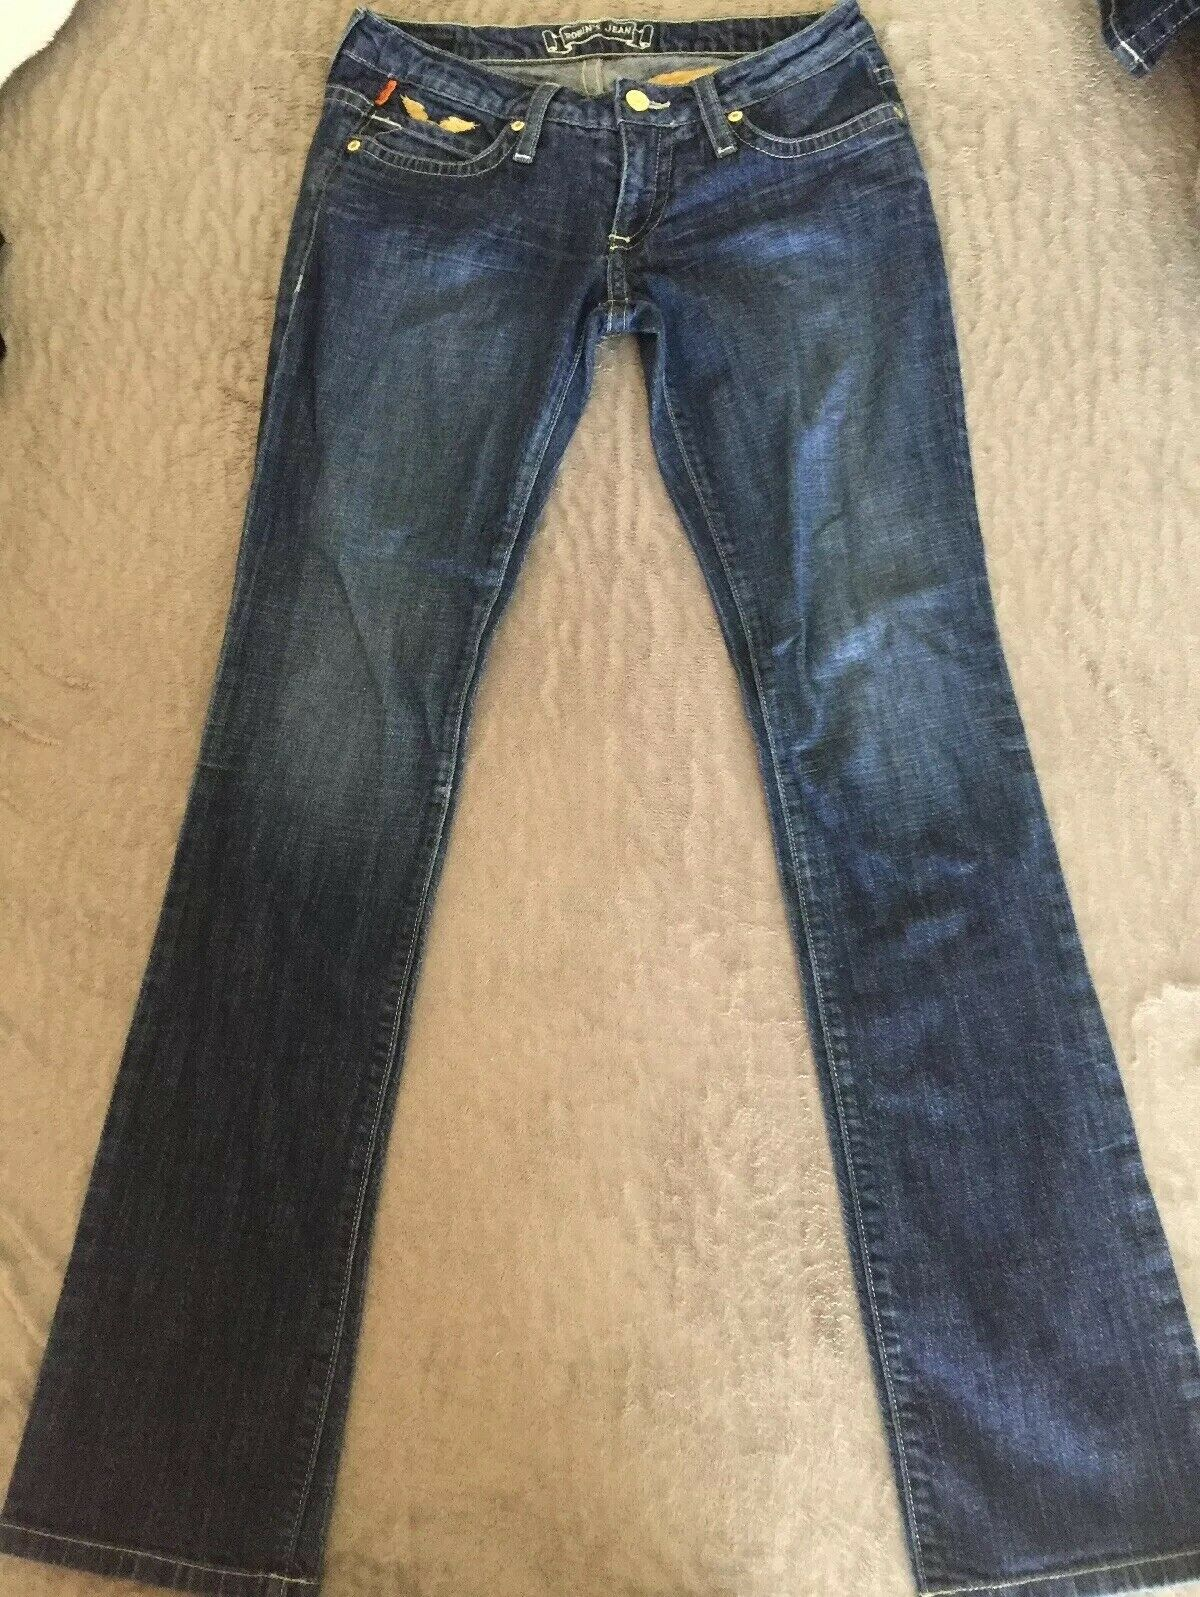 Robins Jeans Womens Size 27